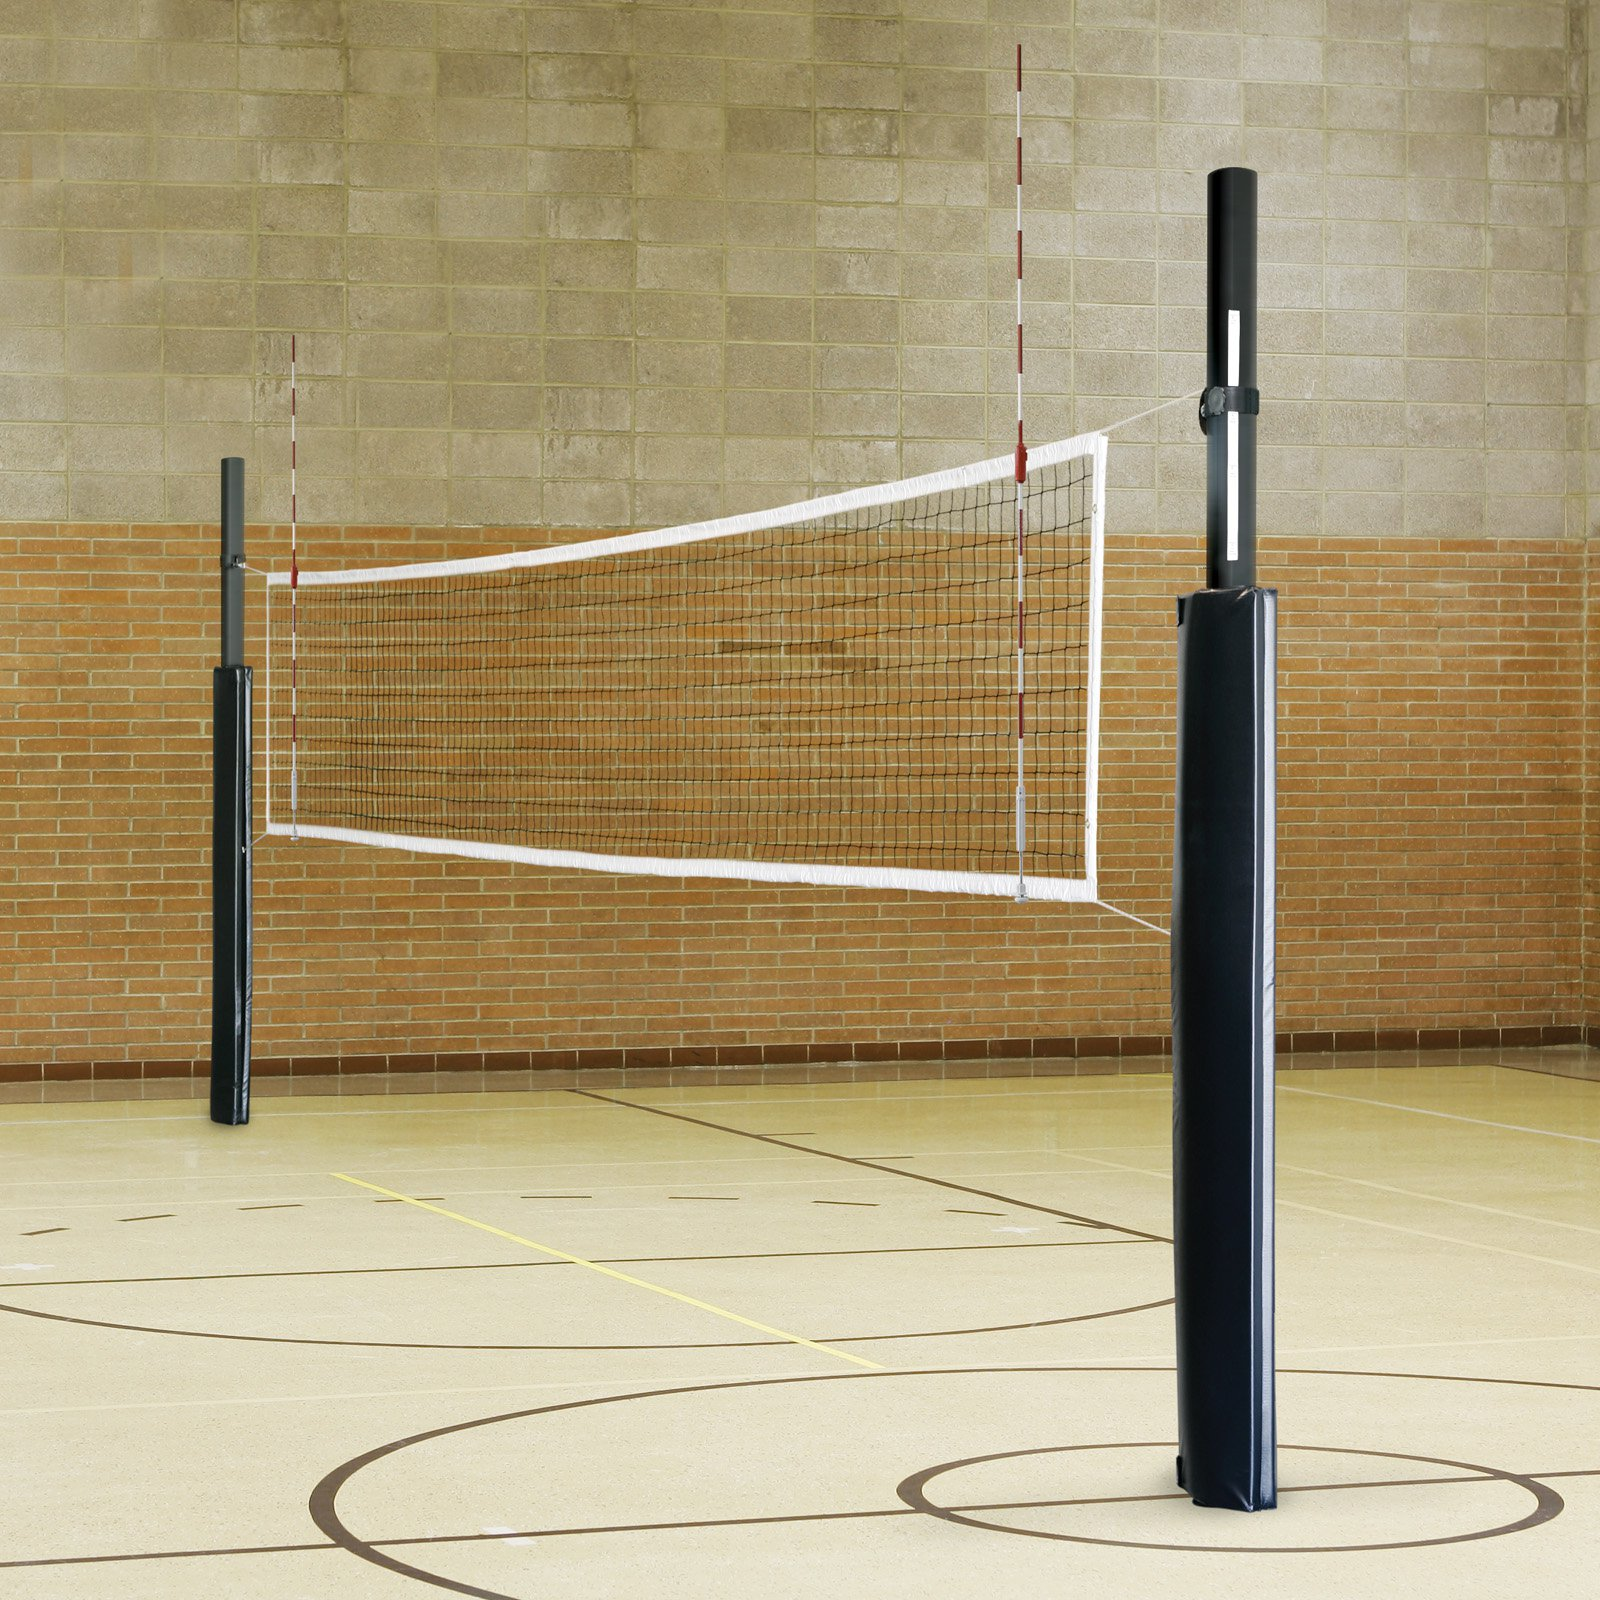 First Team Stellar Complete Recreational Outdoor Volleyball Net System